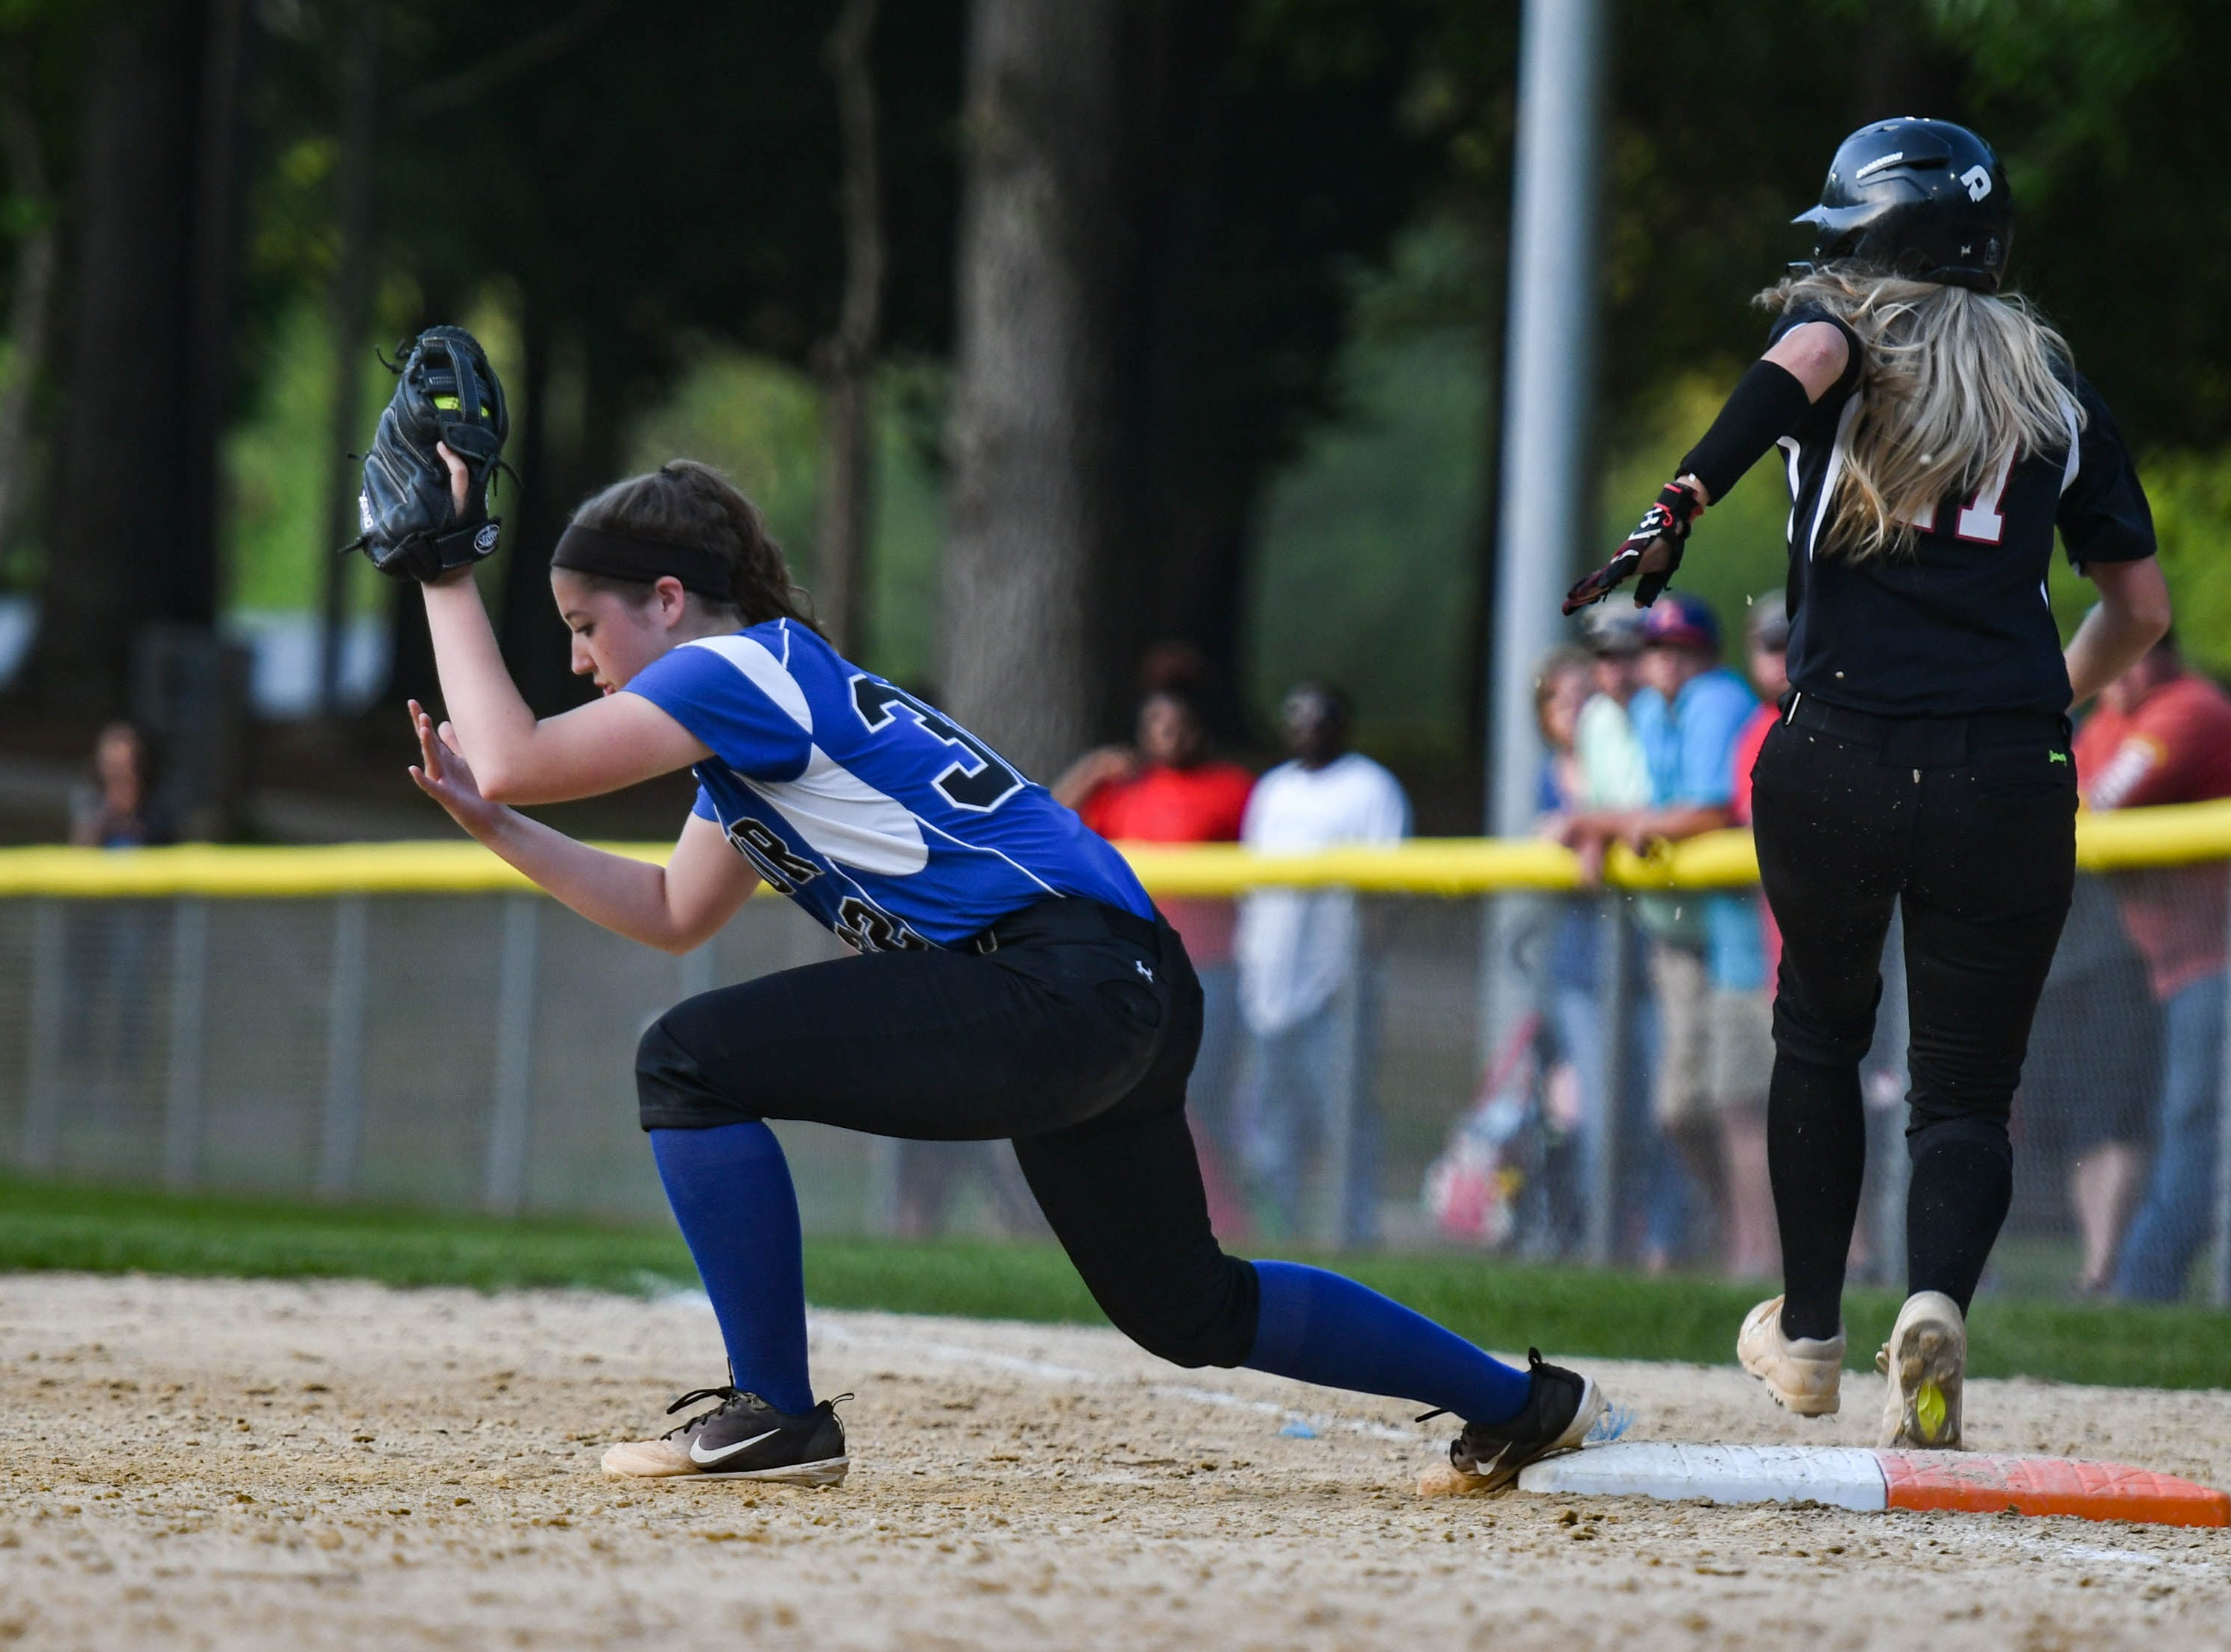 Decatur's Brooklyn Pugner (32) fields a ball against Colonel Richardson in the Bayside Softball Championship game on Wednesday, May 8, 2019. Decatur prevailed with a score of 4 to 1.